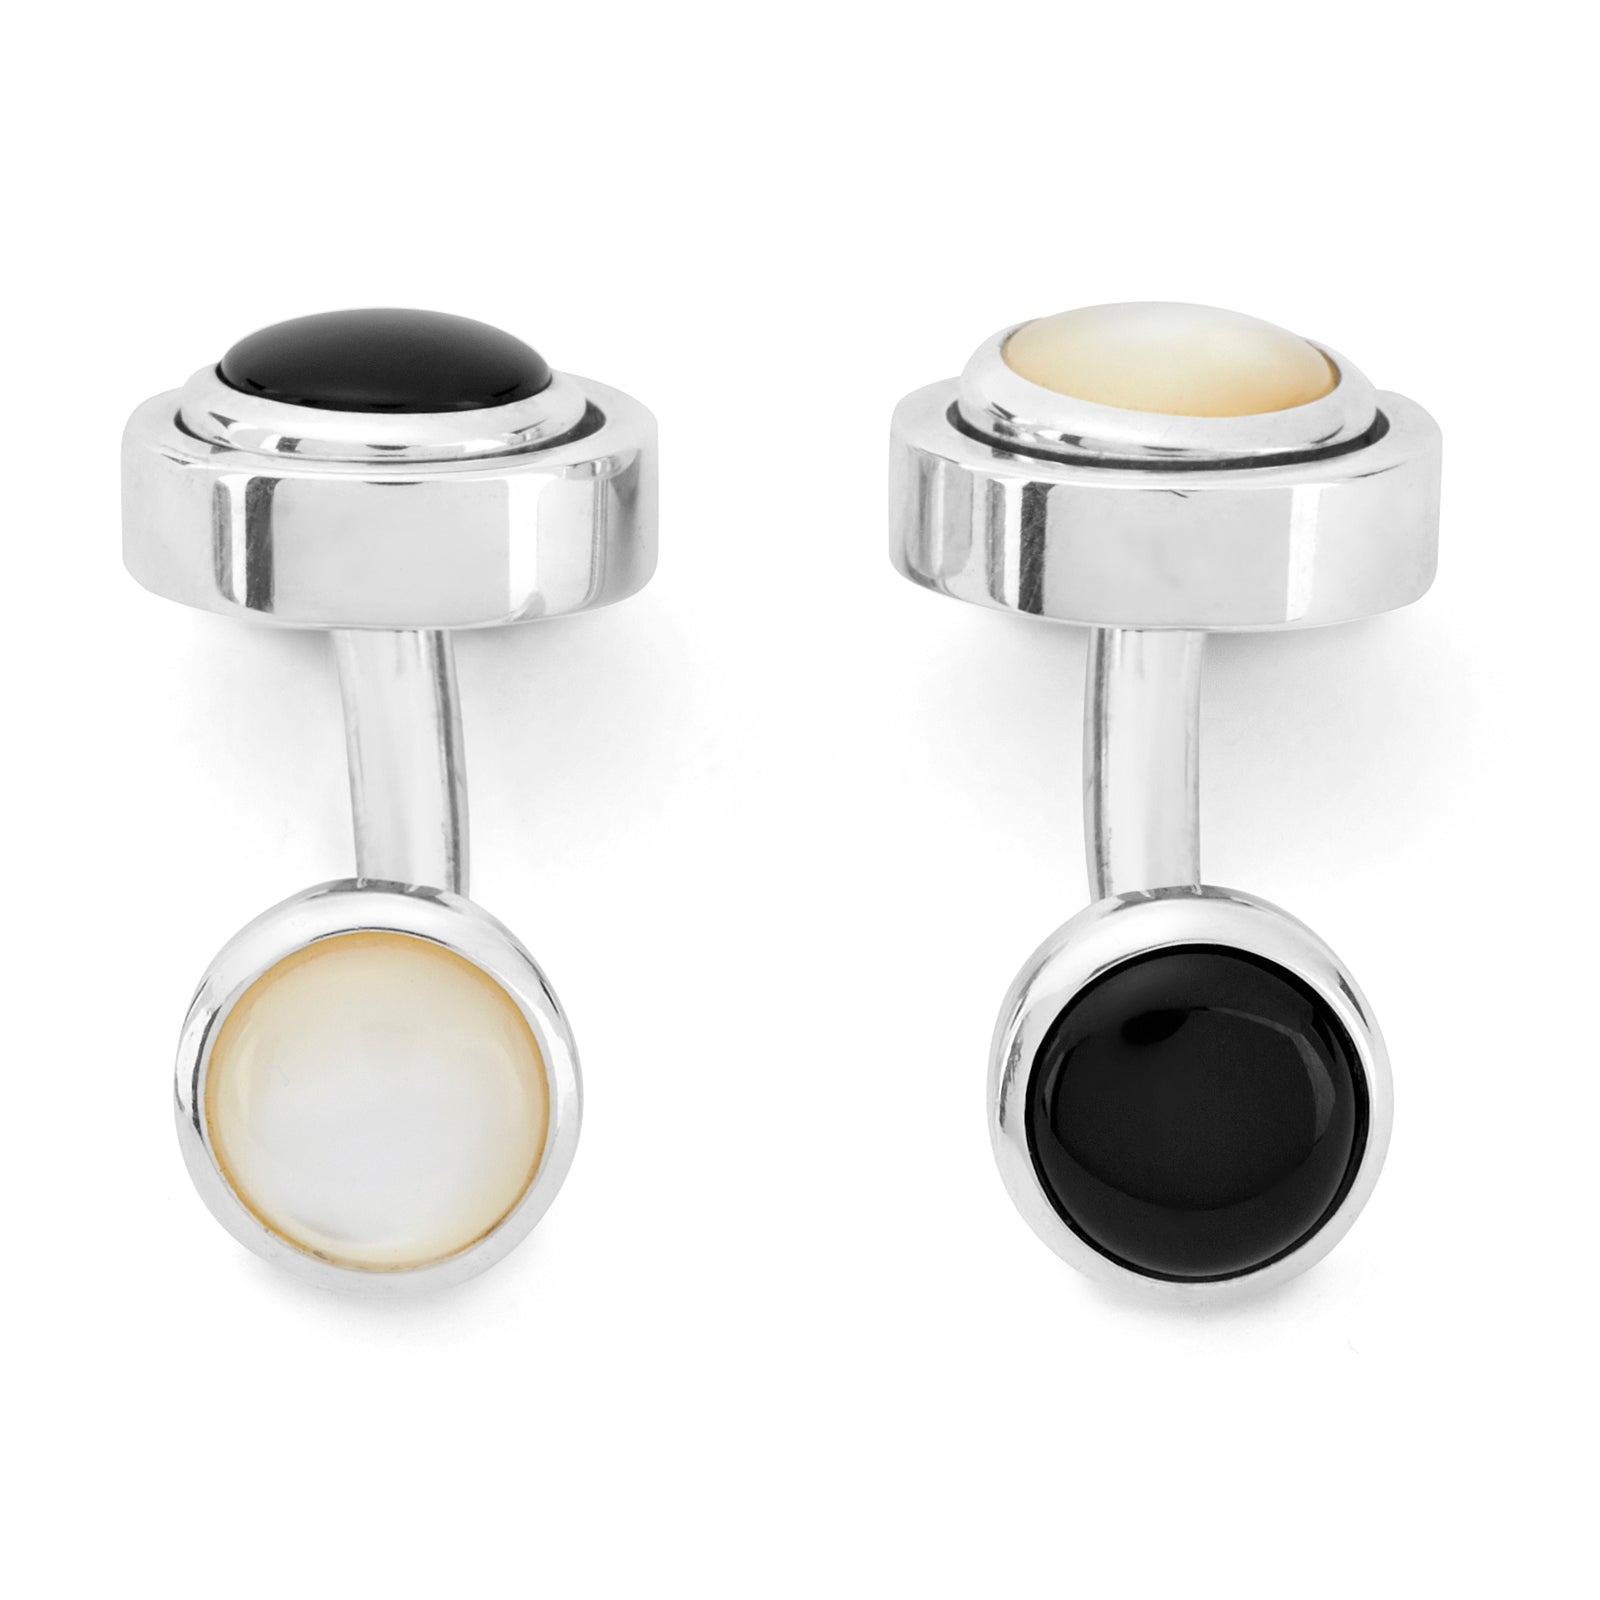 Reversible Monochrome Sterling Silver Round Cufflinks